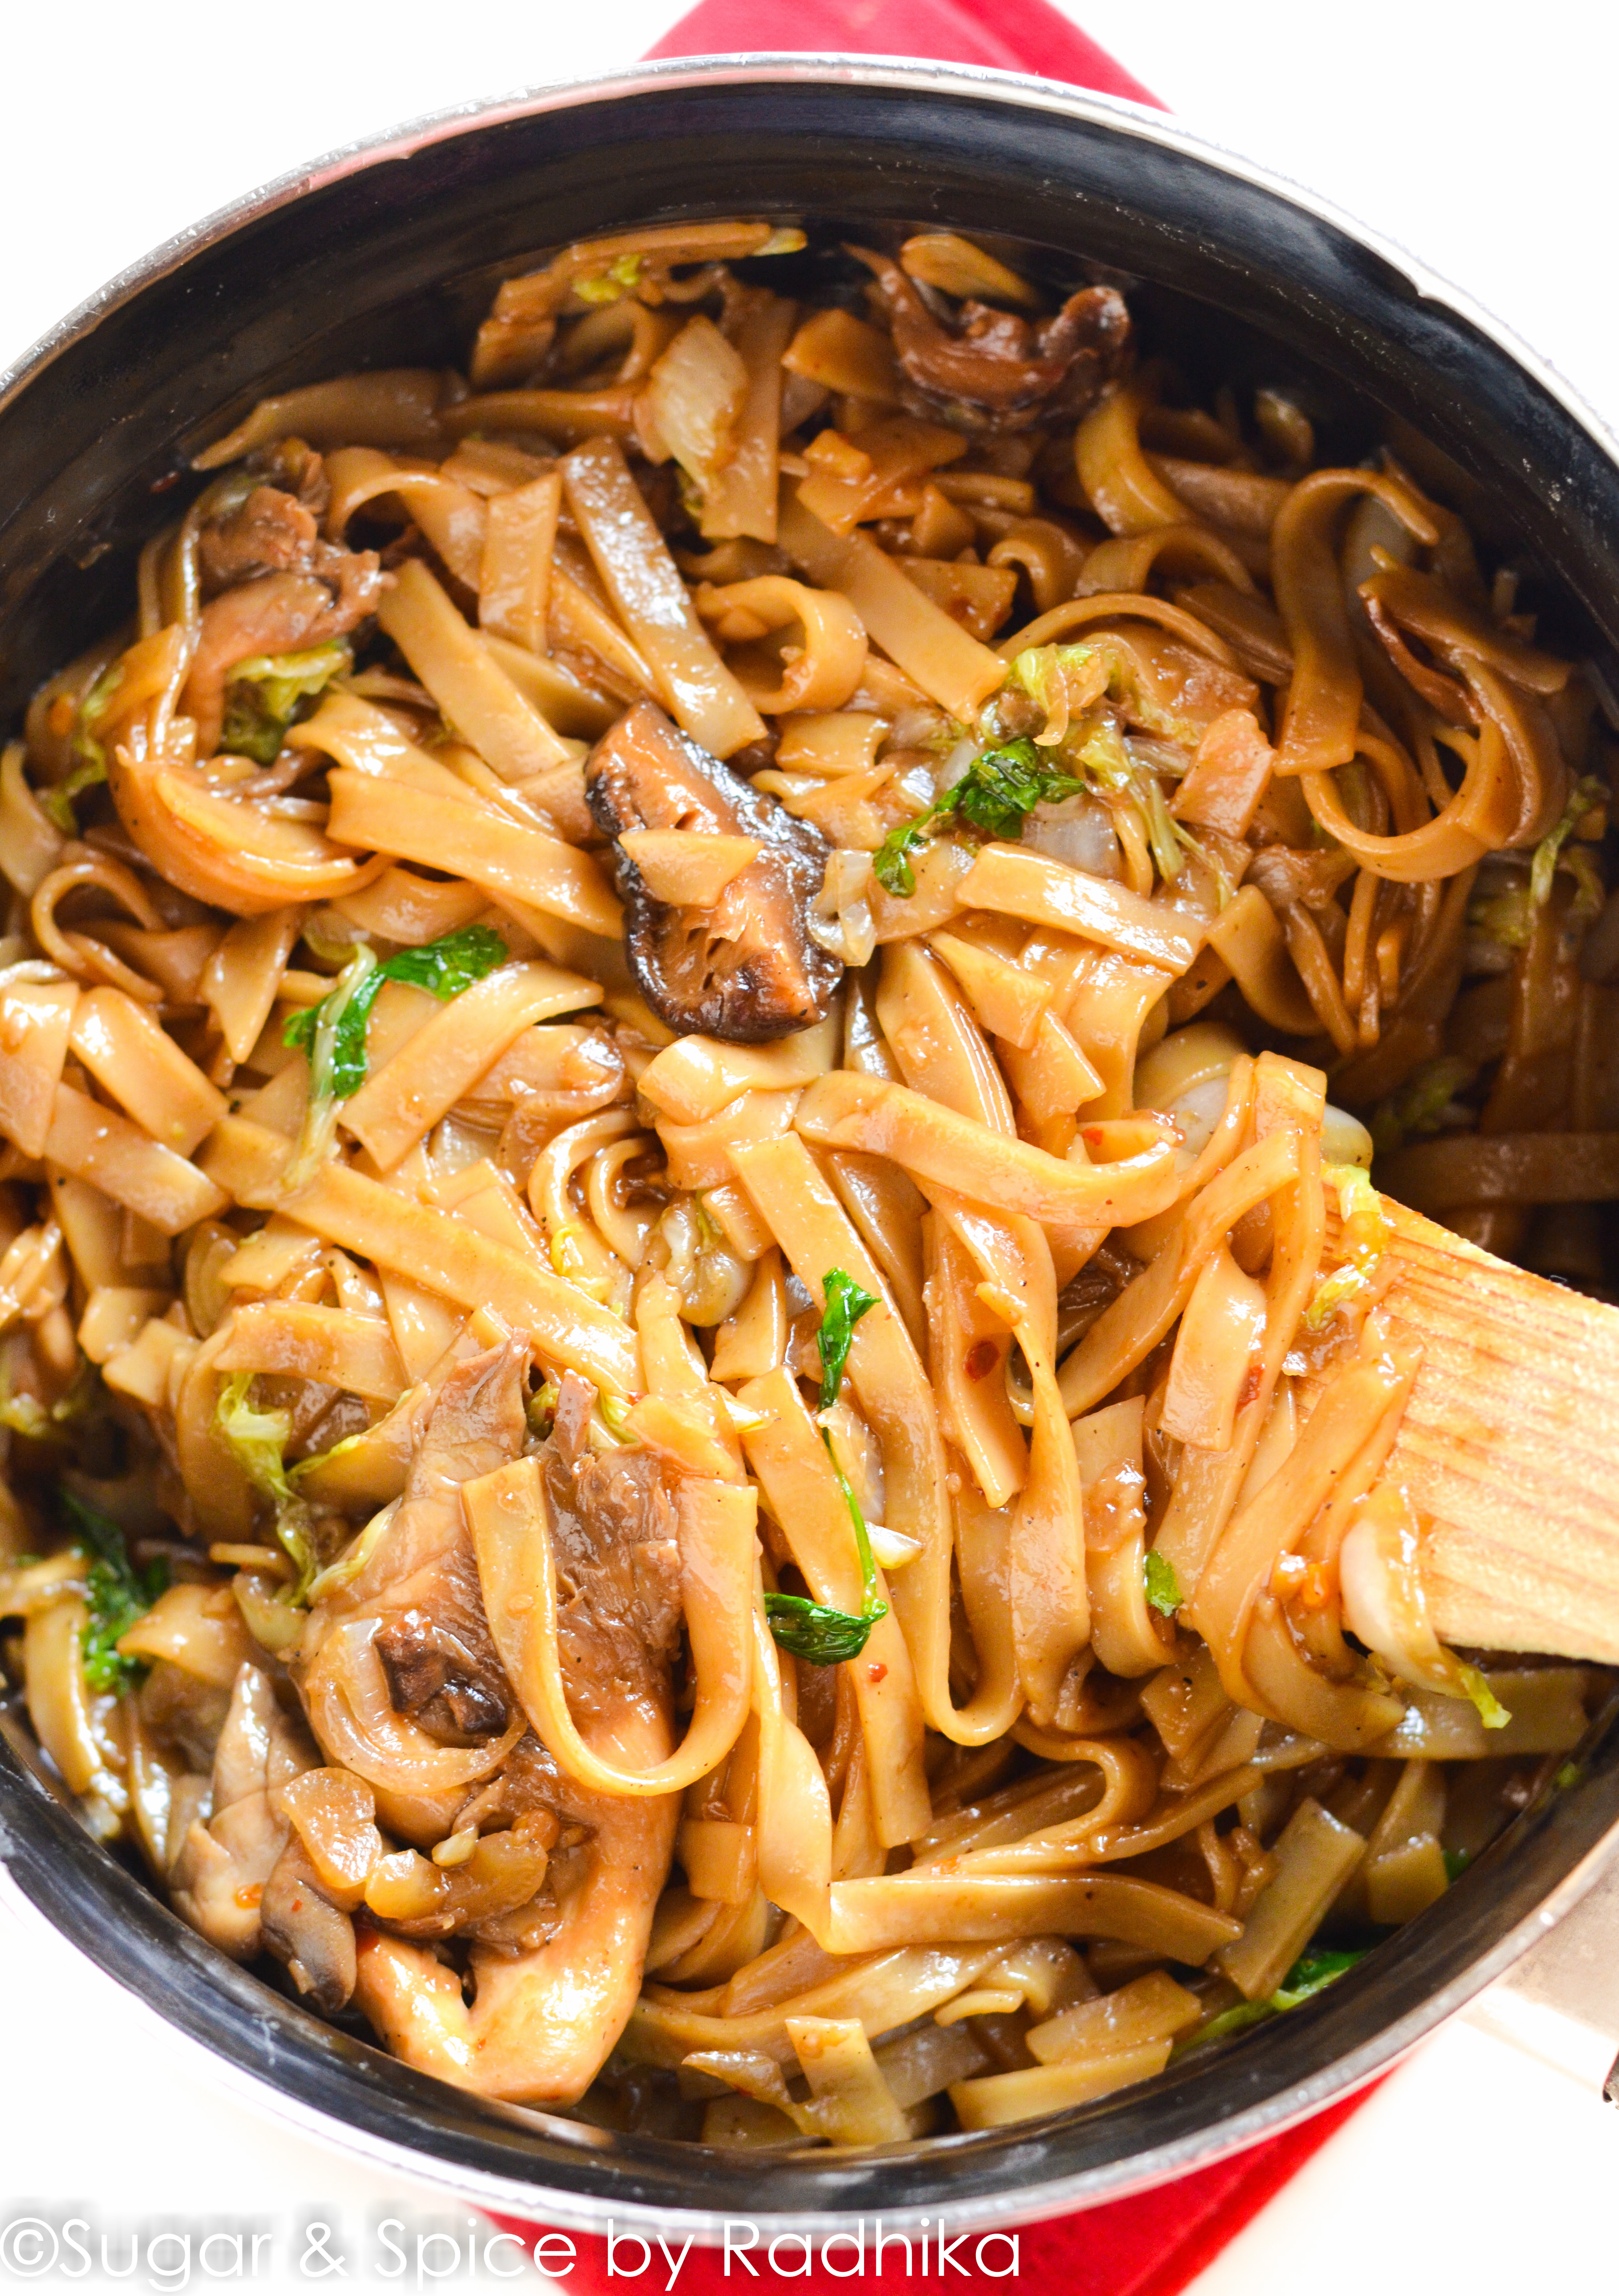 Rice Stick Noodles With Shiitake And Oyster Mushrooms  Cook Gourmet